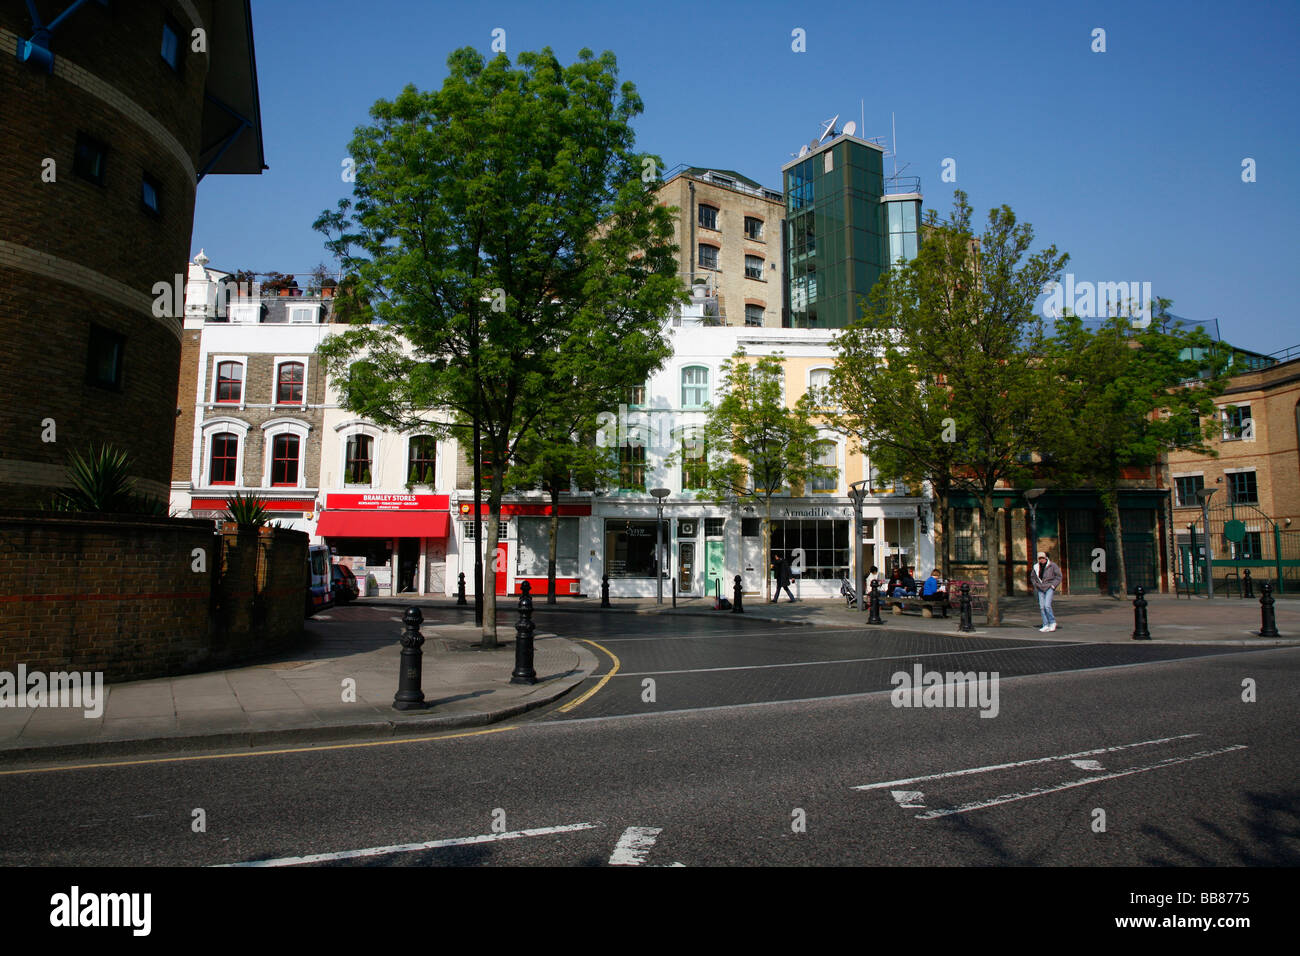 Parade of shops and cafes on Bramley Road in Notting Dale, London, UK - Stock Image